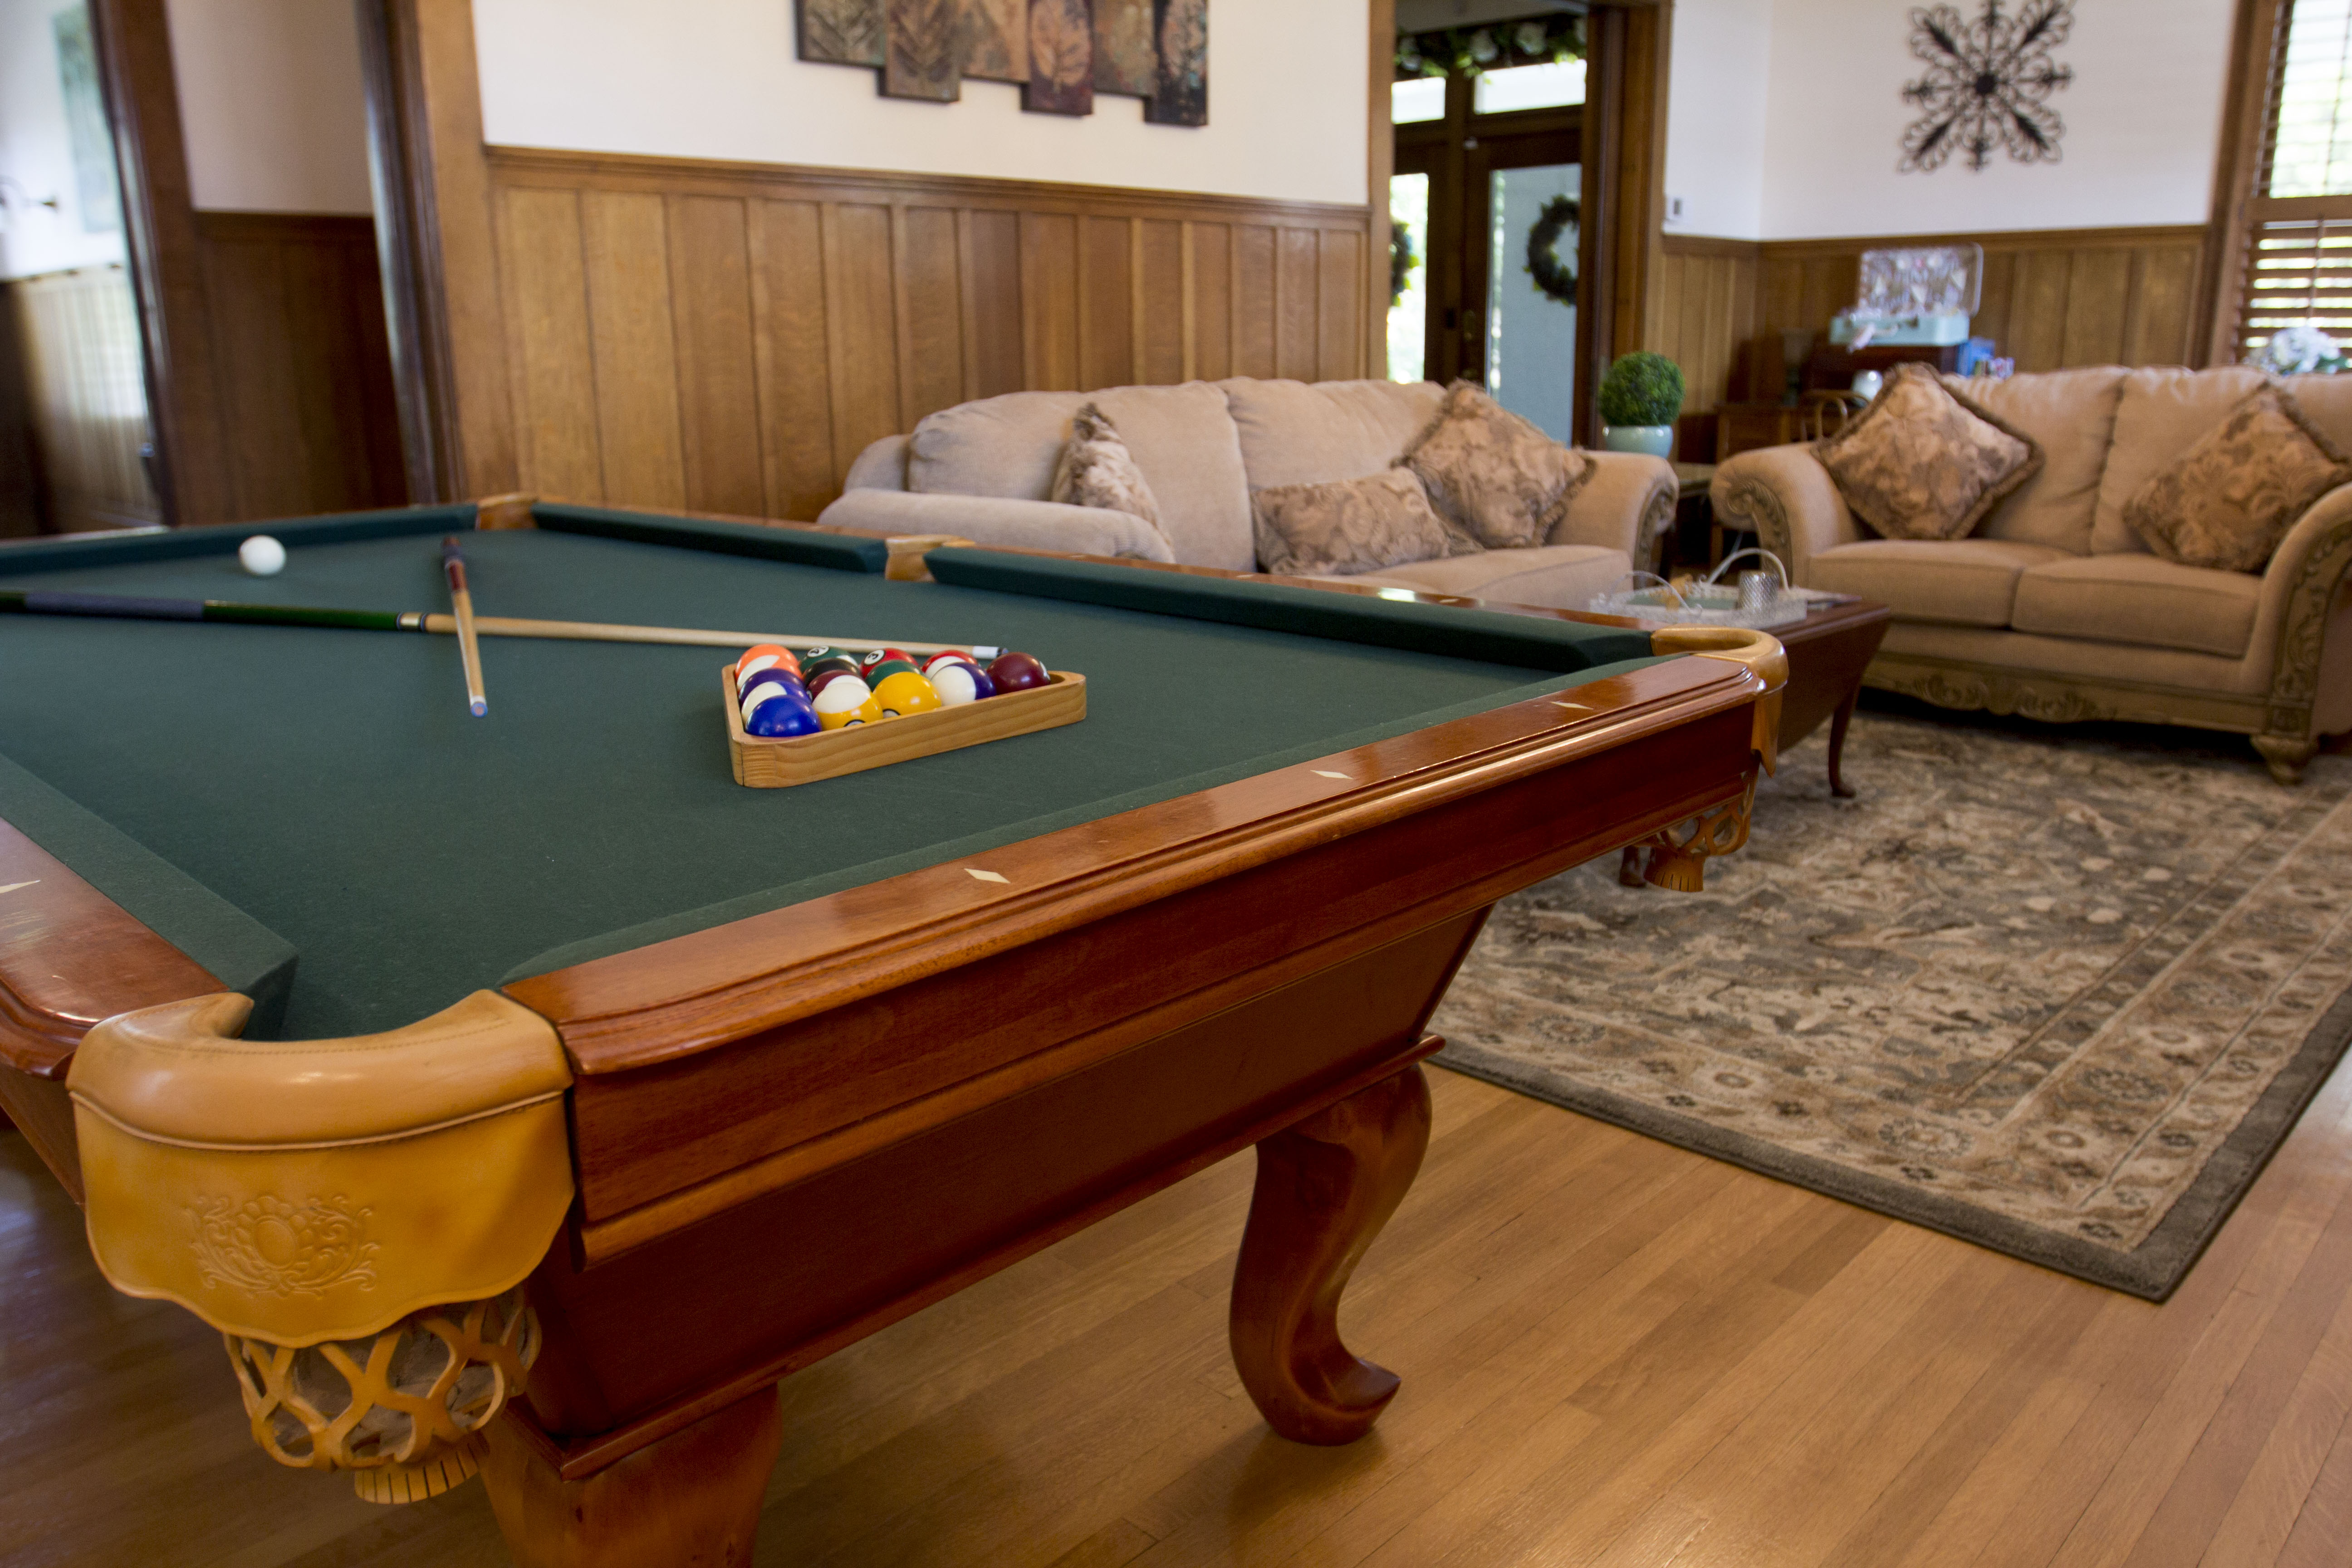 Pool Table & Living Room